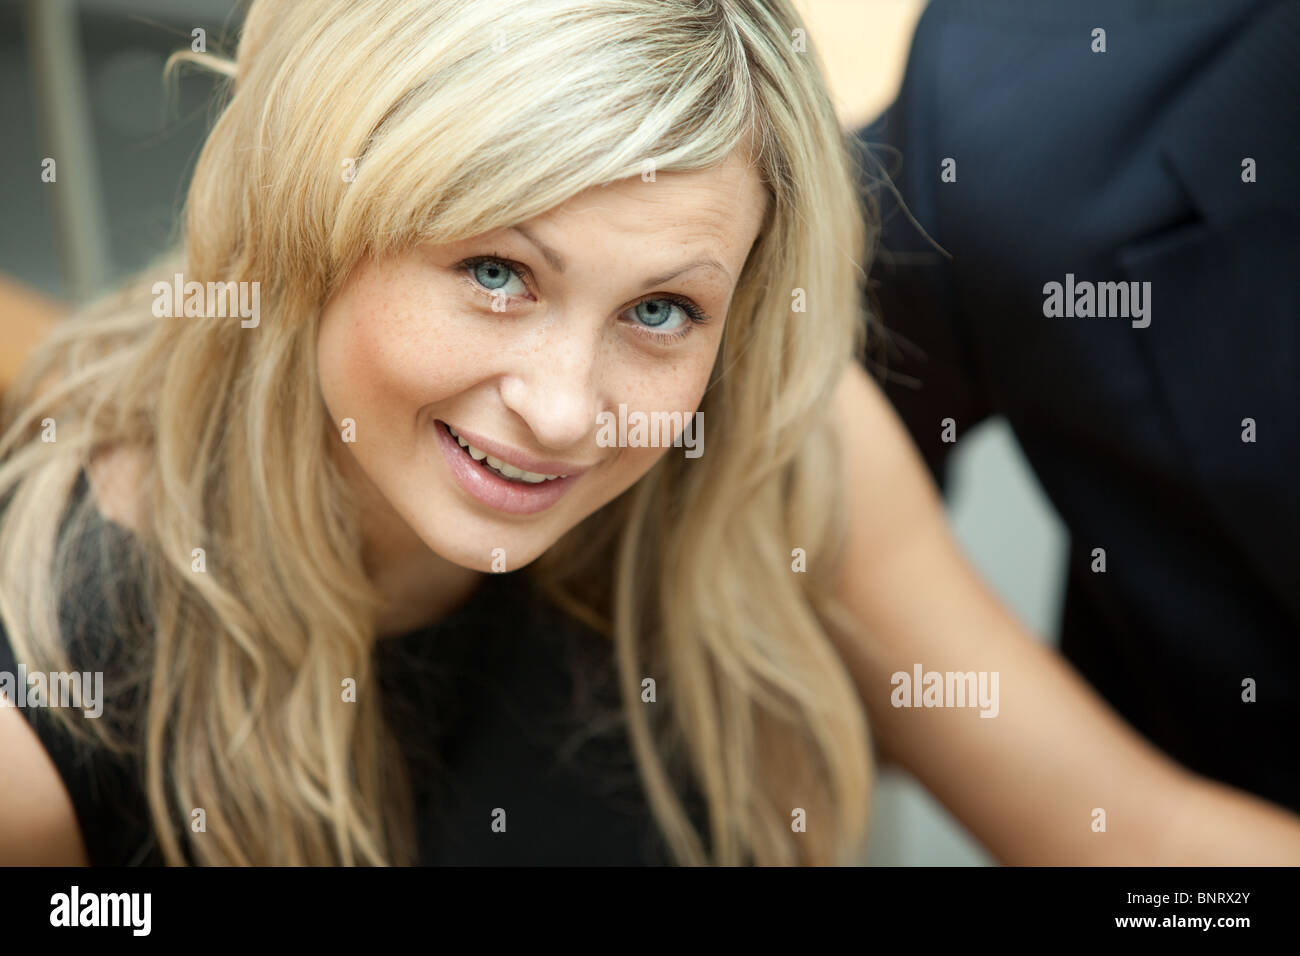 Radiant business woman smiling at the camera - Stock Image